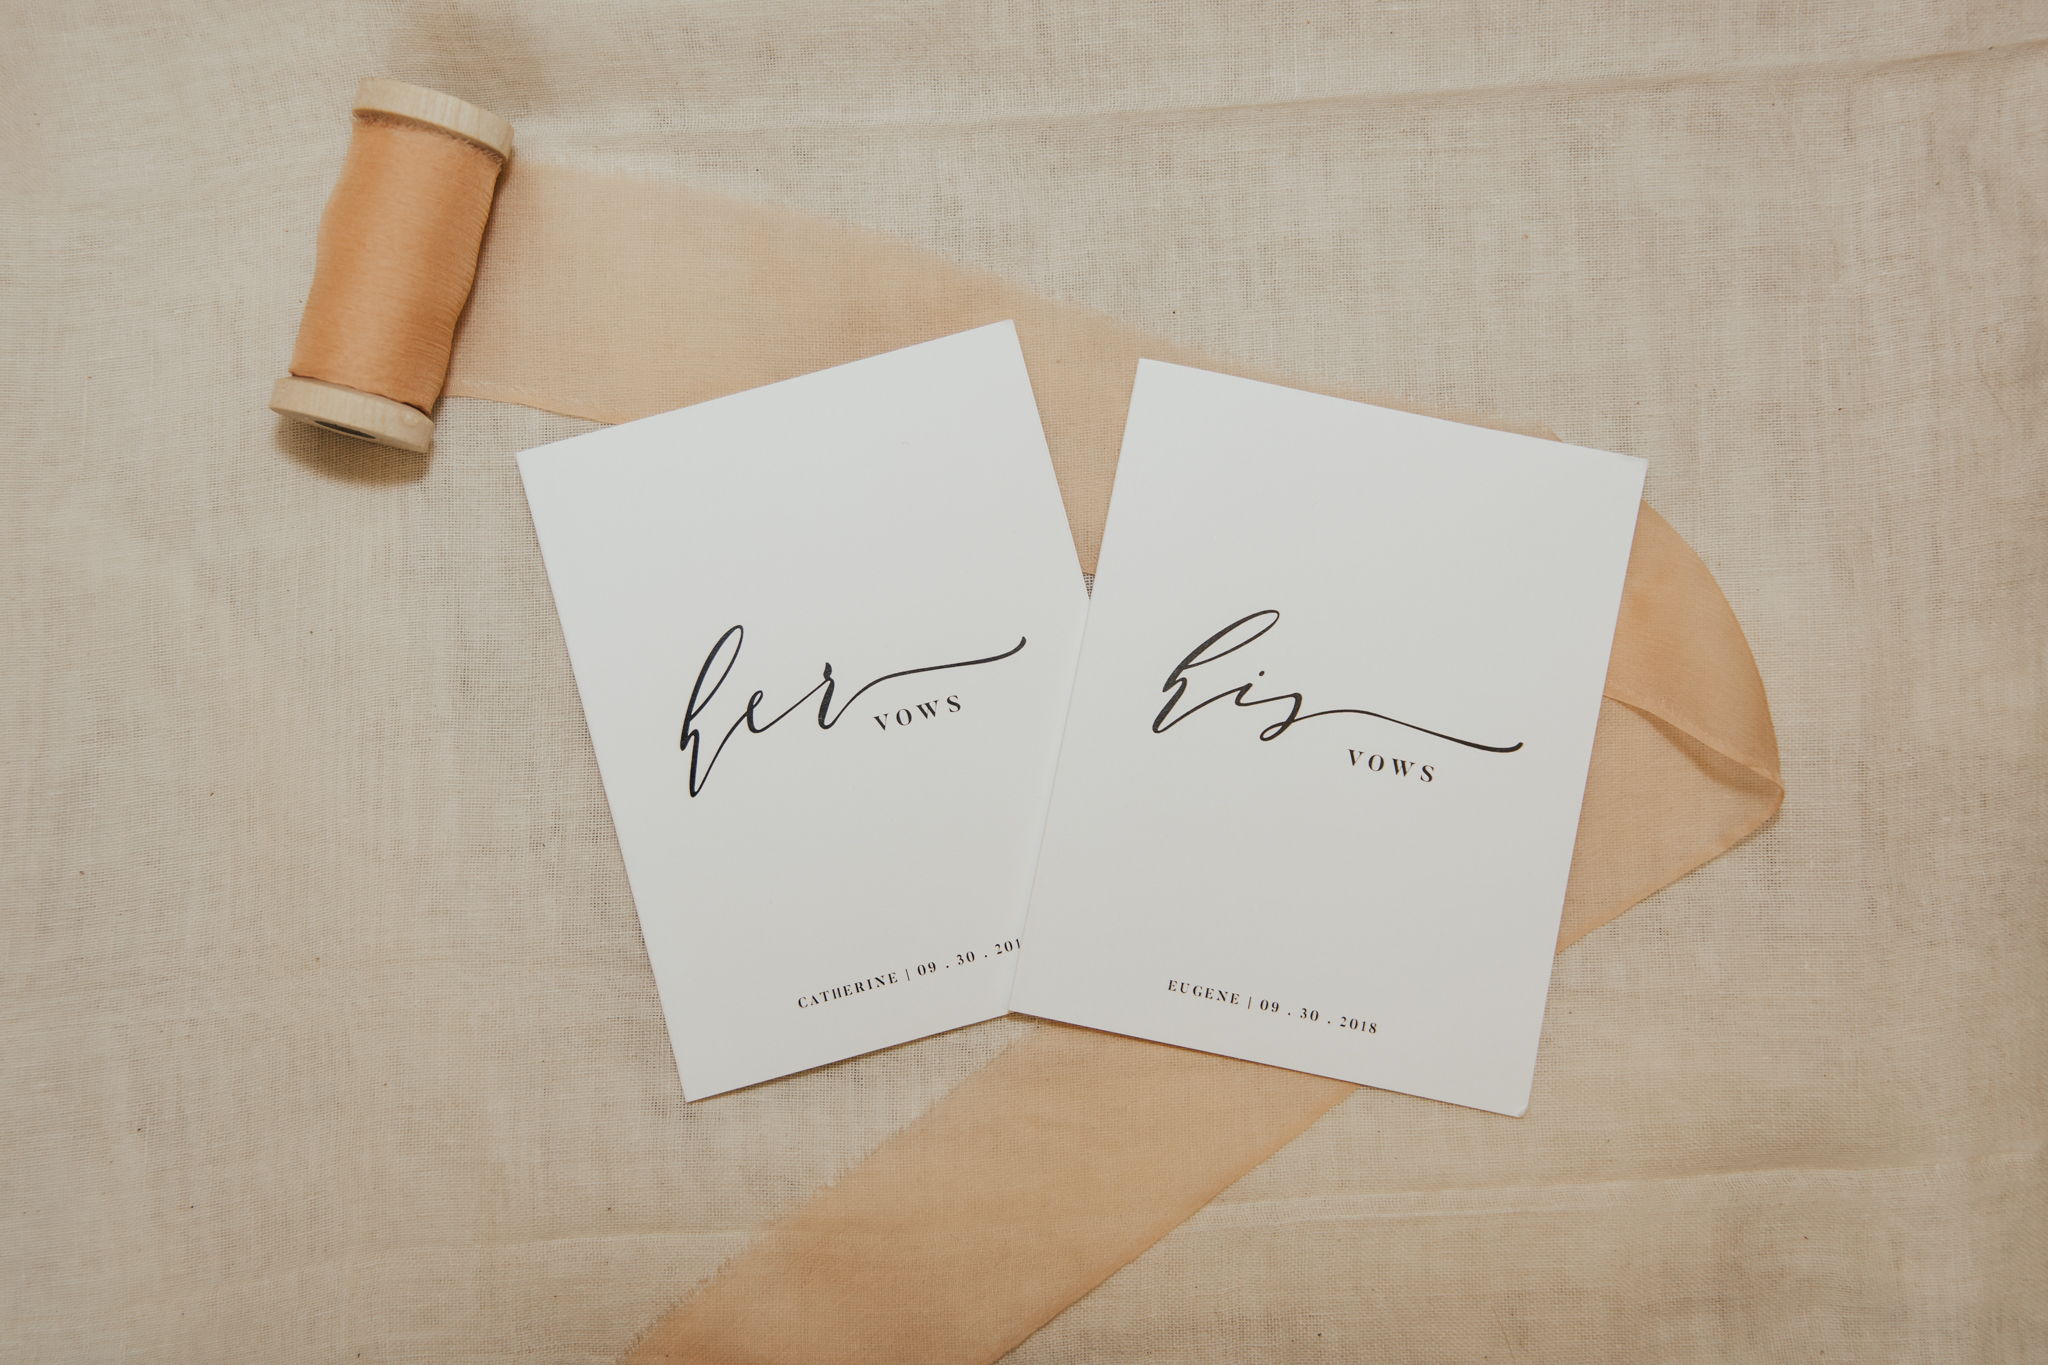 his and her vows